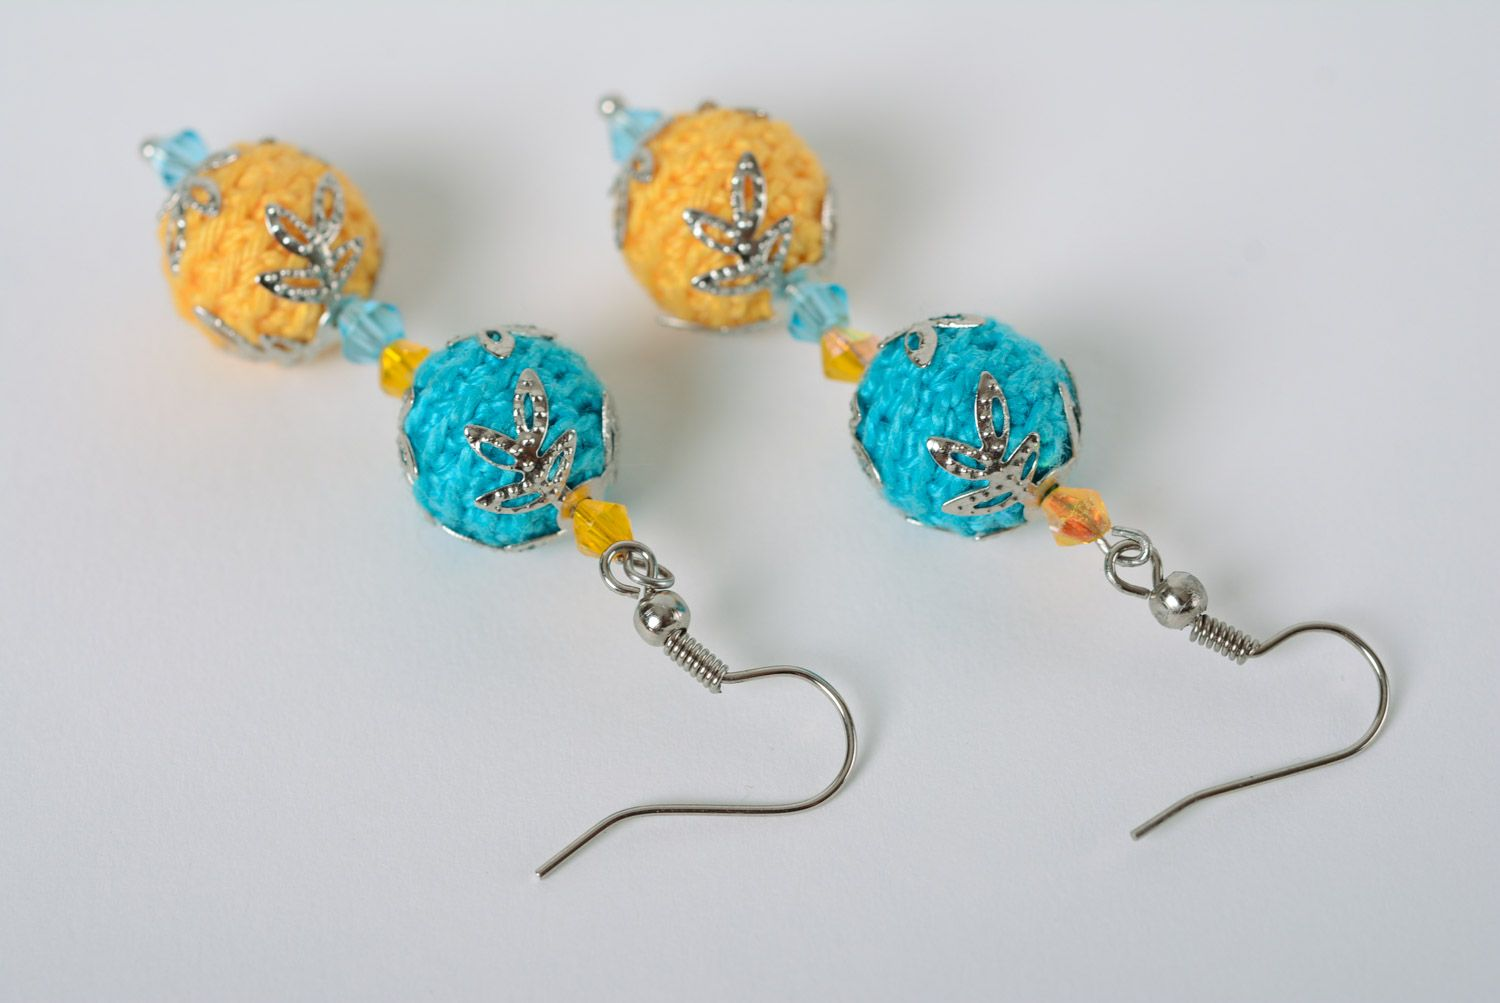 Handmade dangle earrings crocheted of cotton threads of yellow and blue colors photo 3